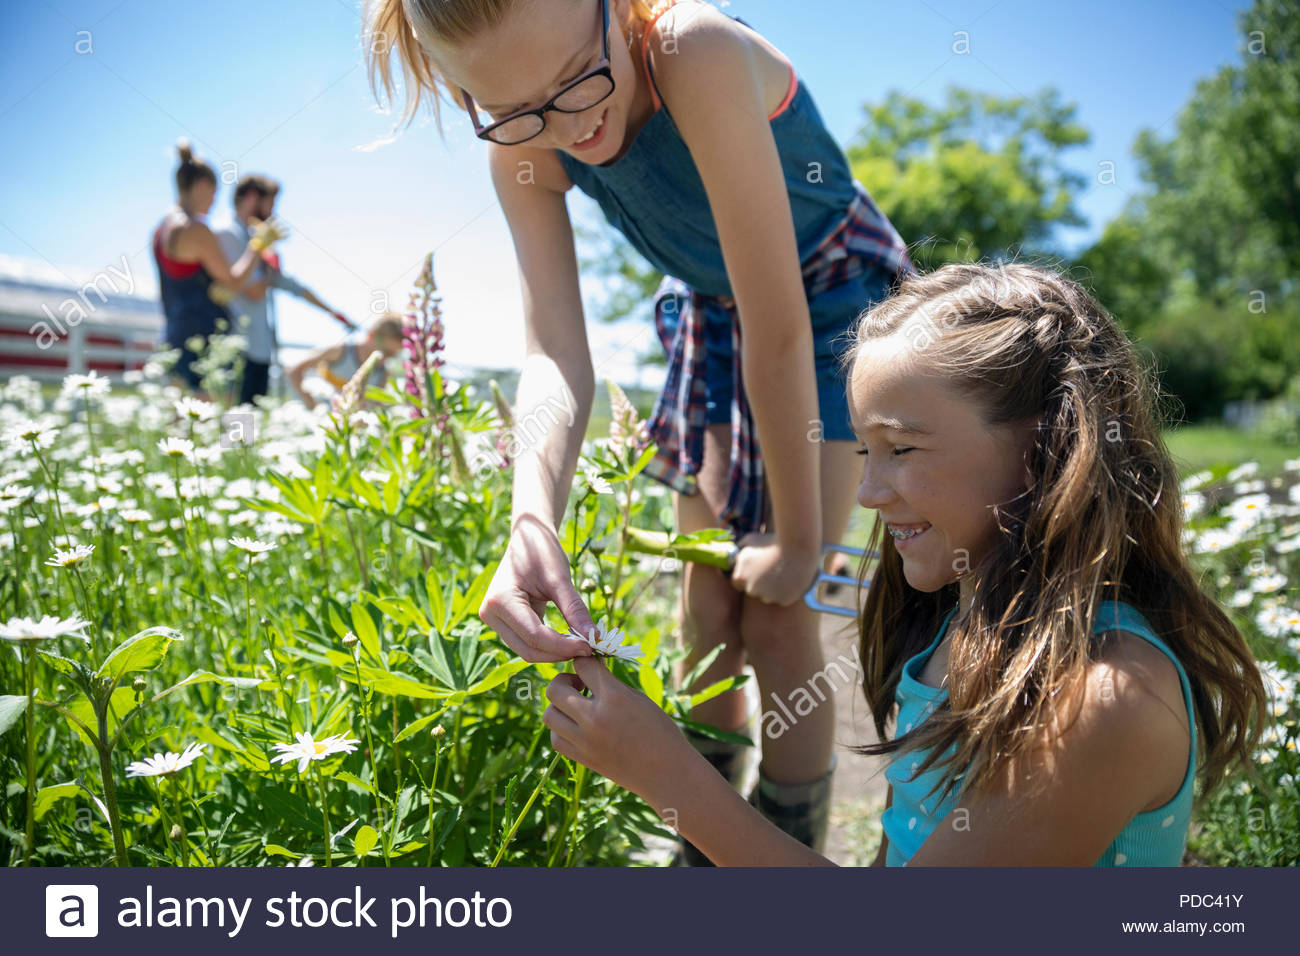 Sisters gardening, picking daisies in sunny rural garden - Stock Image